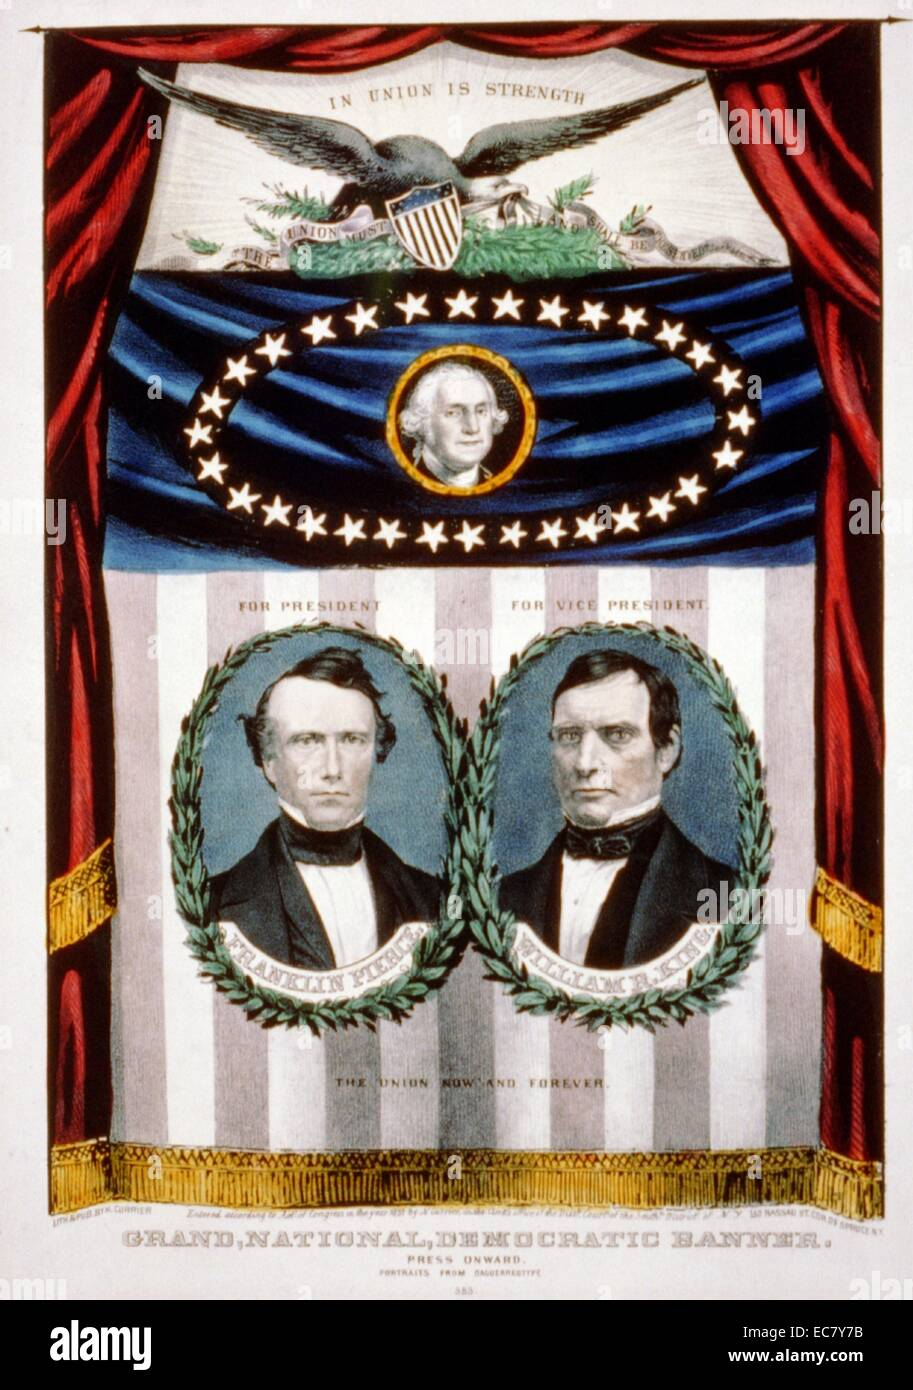 Presidential campaign banner - Stock Image